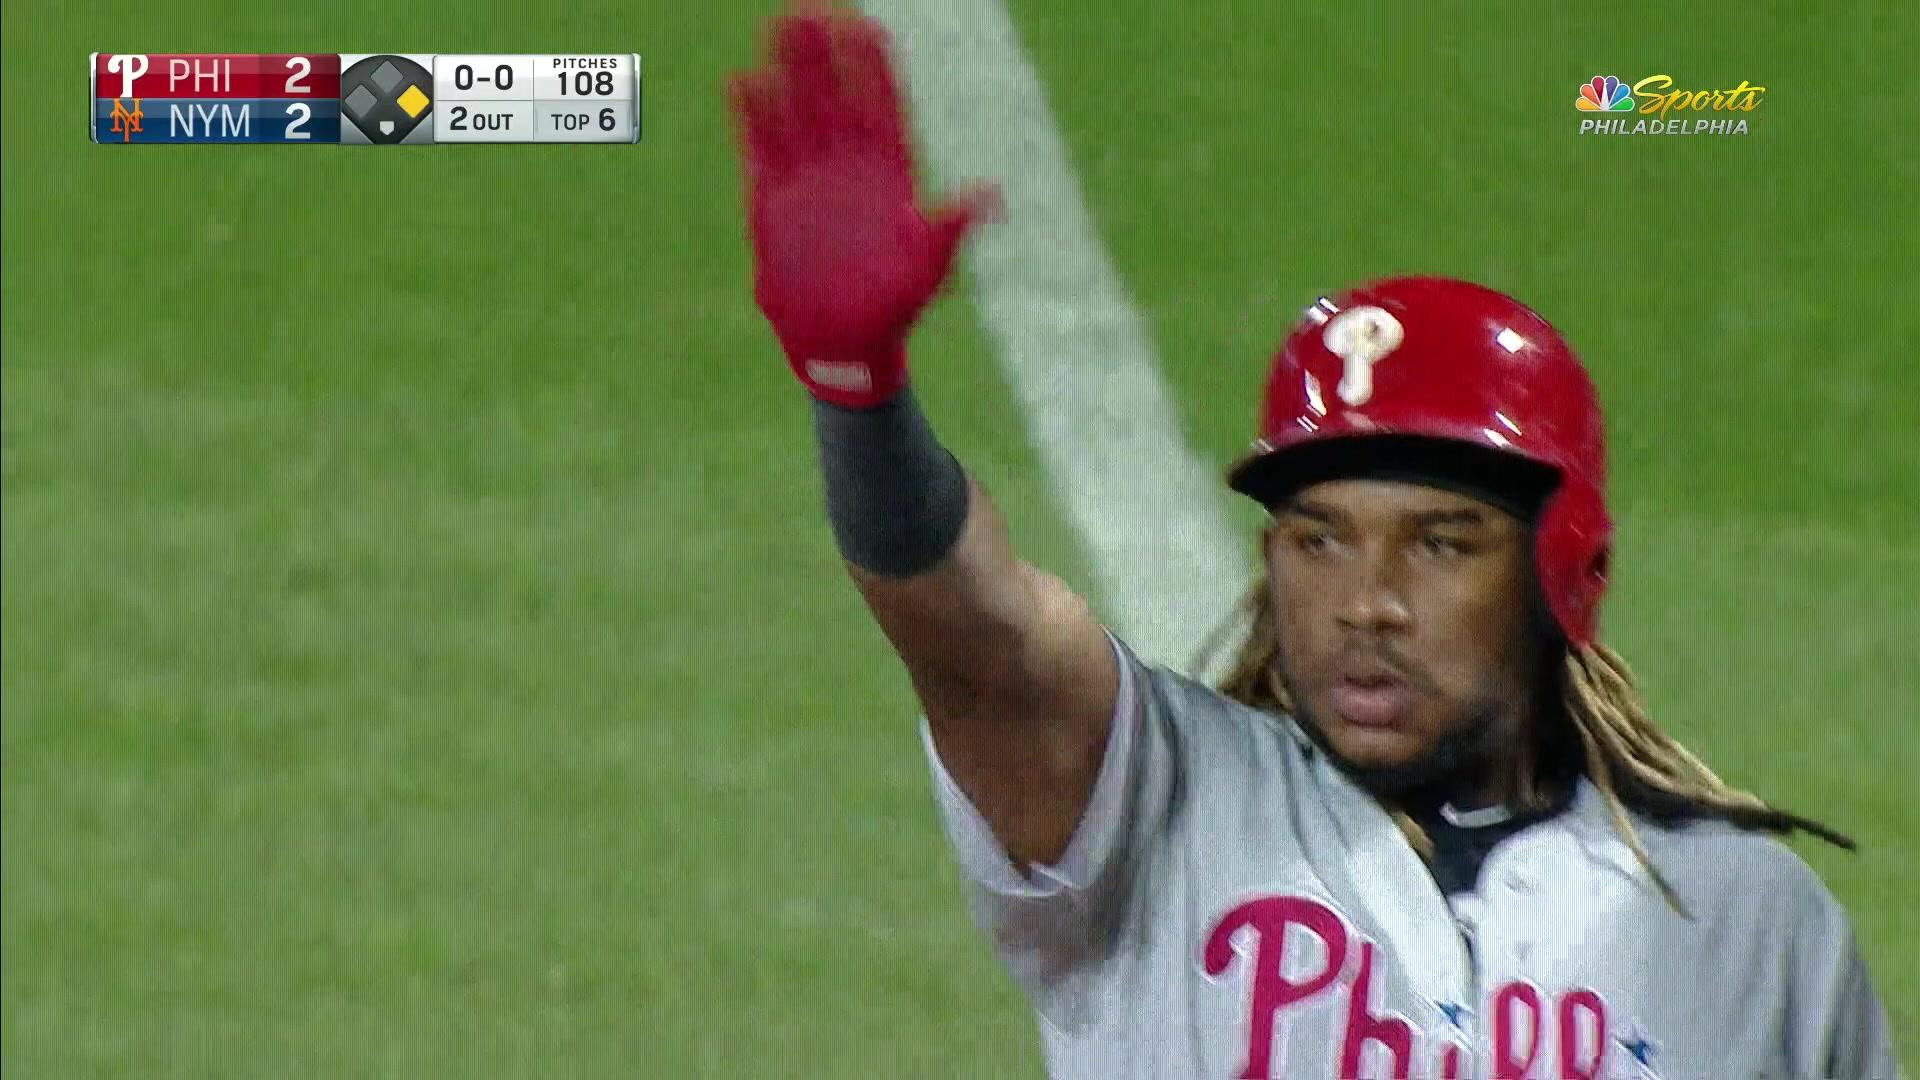 Maikel Franco for the tie! He knots the game up at two against the